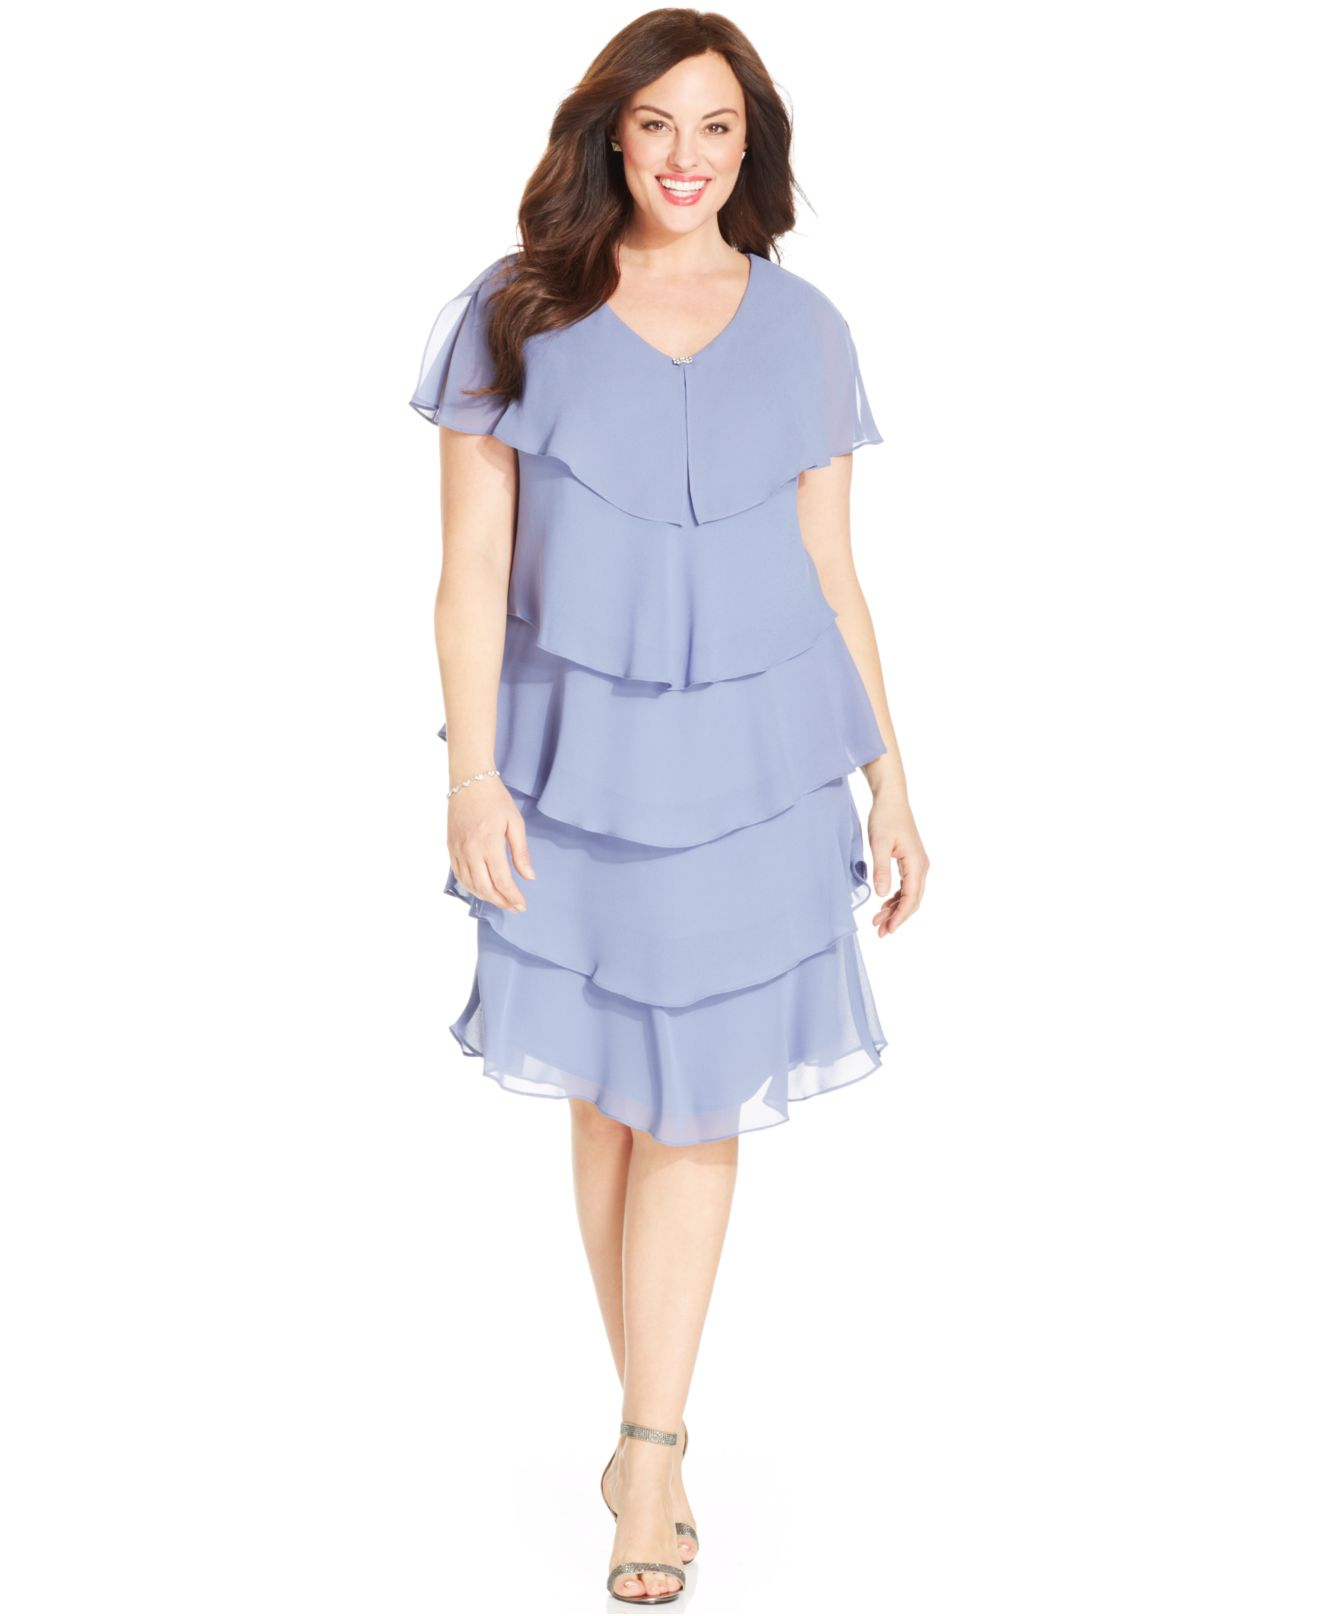 Patra Plus Size Short-sleeve Tiered Dress in Blue - Lyst